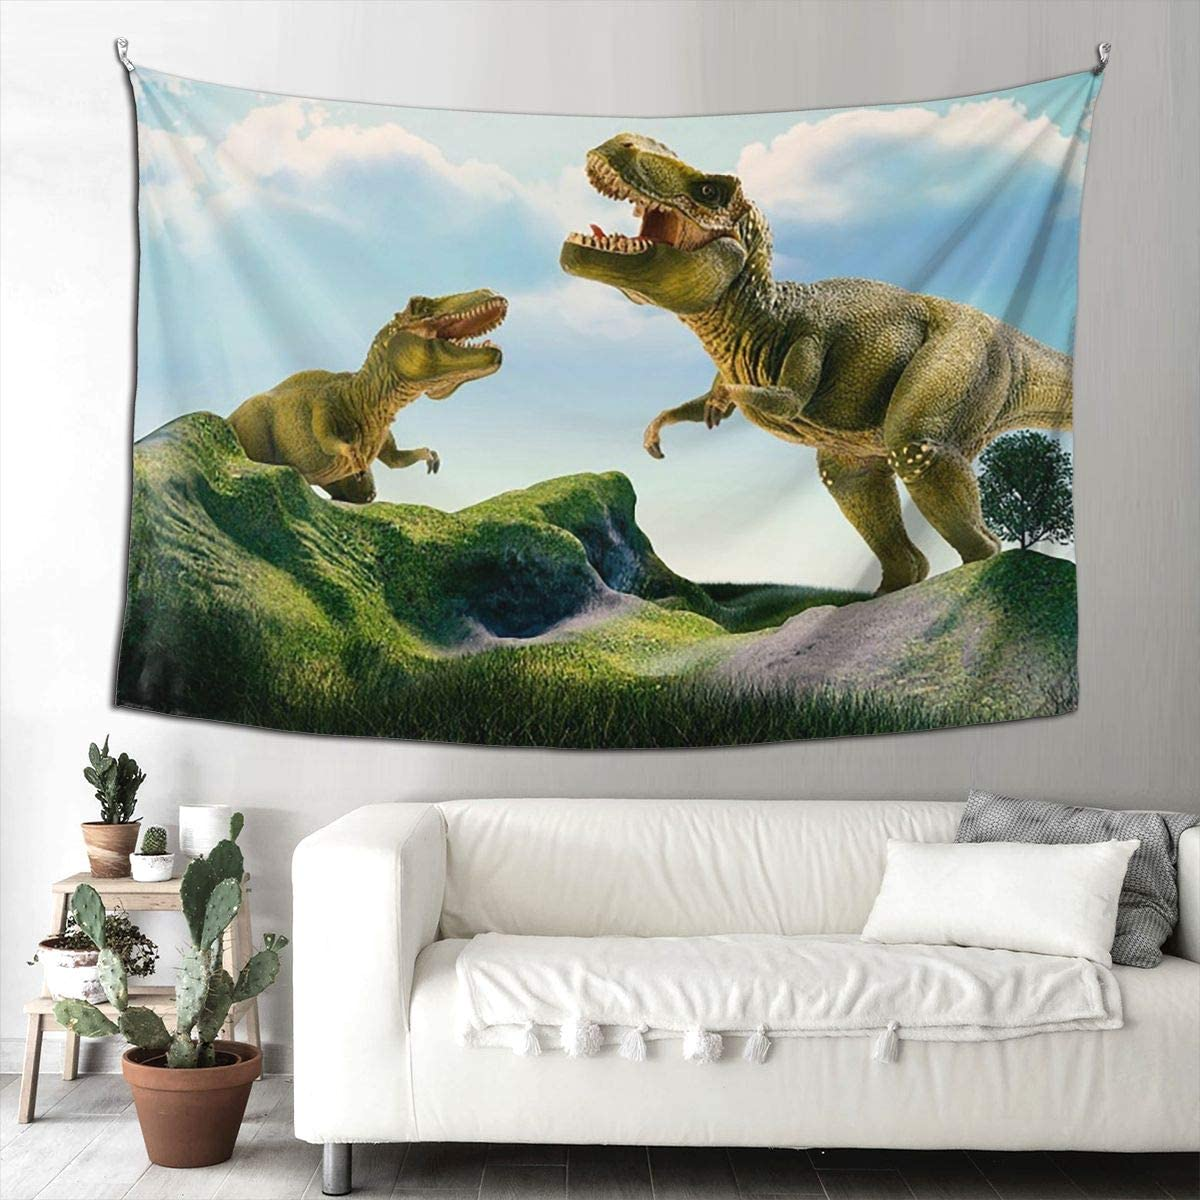 KiuLoam 3D Dinosaur Animal Design Artistic Tapestry Wall Art Hanging Tapestries Wall Blanket for Bedroom Living Room Doorway Wall Decor Tapestry 90×60 Inches